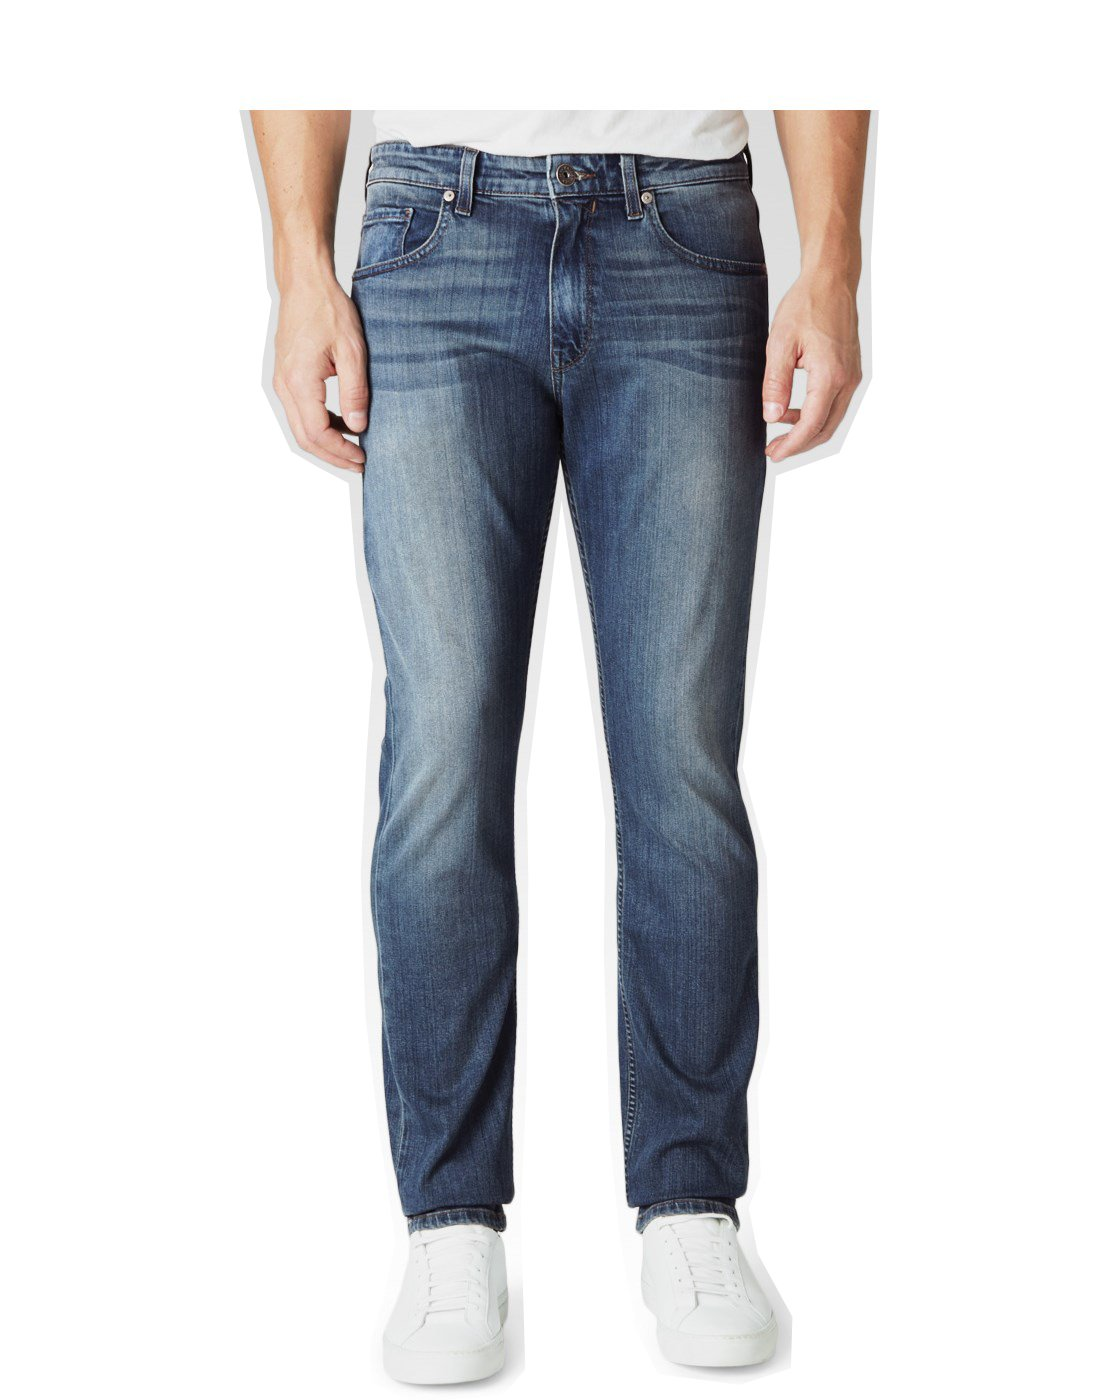 Paige Men's Federal Slim Fit Jeans (32, Beale Wash)